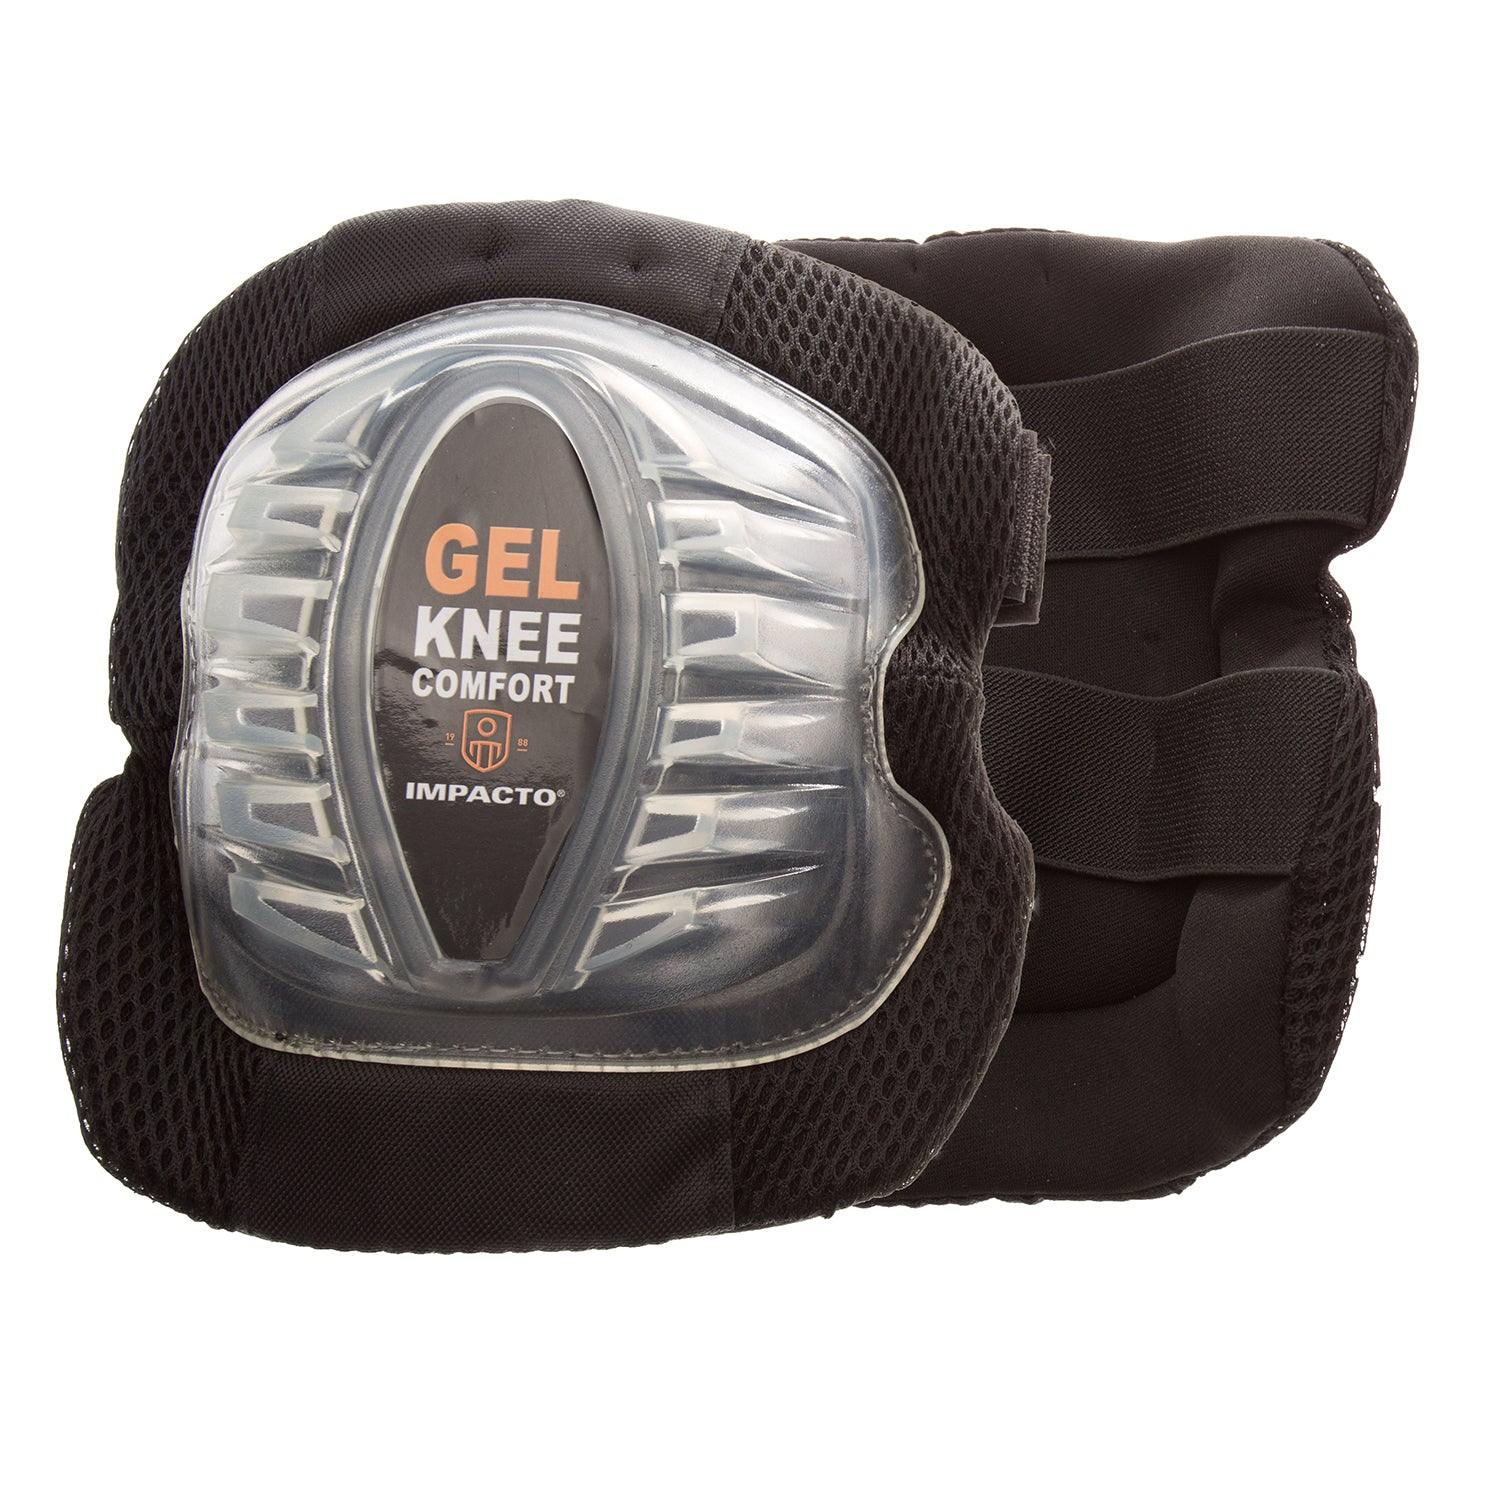 864-00 All-Terrain Gel Kneepads have a donut-shaped GEL filled pad that provides cushioning and shock and reduces direct pressure to the patella bone while you work. The elevated surface of the 864-00 kneepad improves stability and traction, absorbs impact, and helps support your knee.